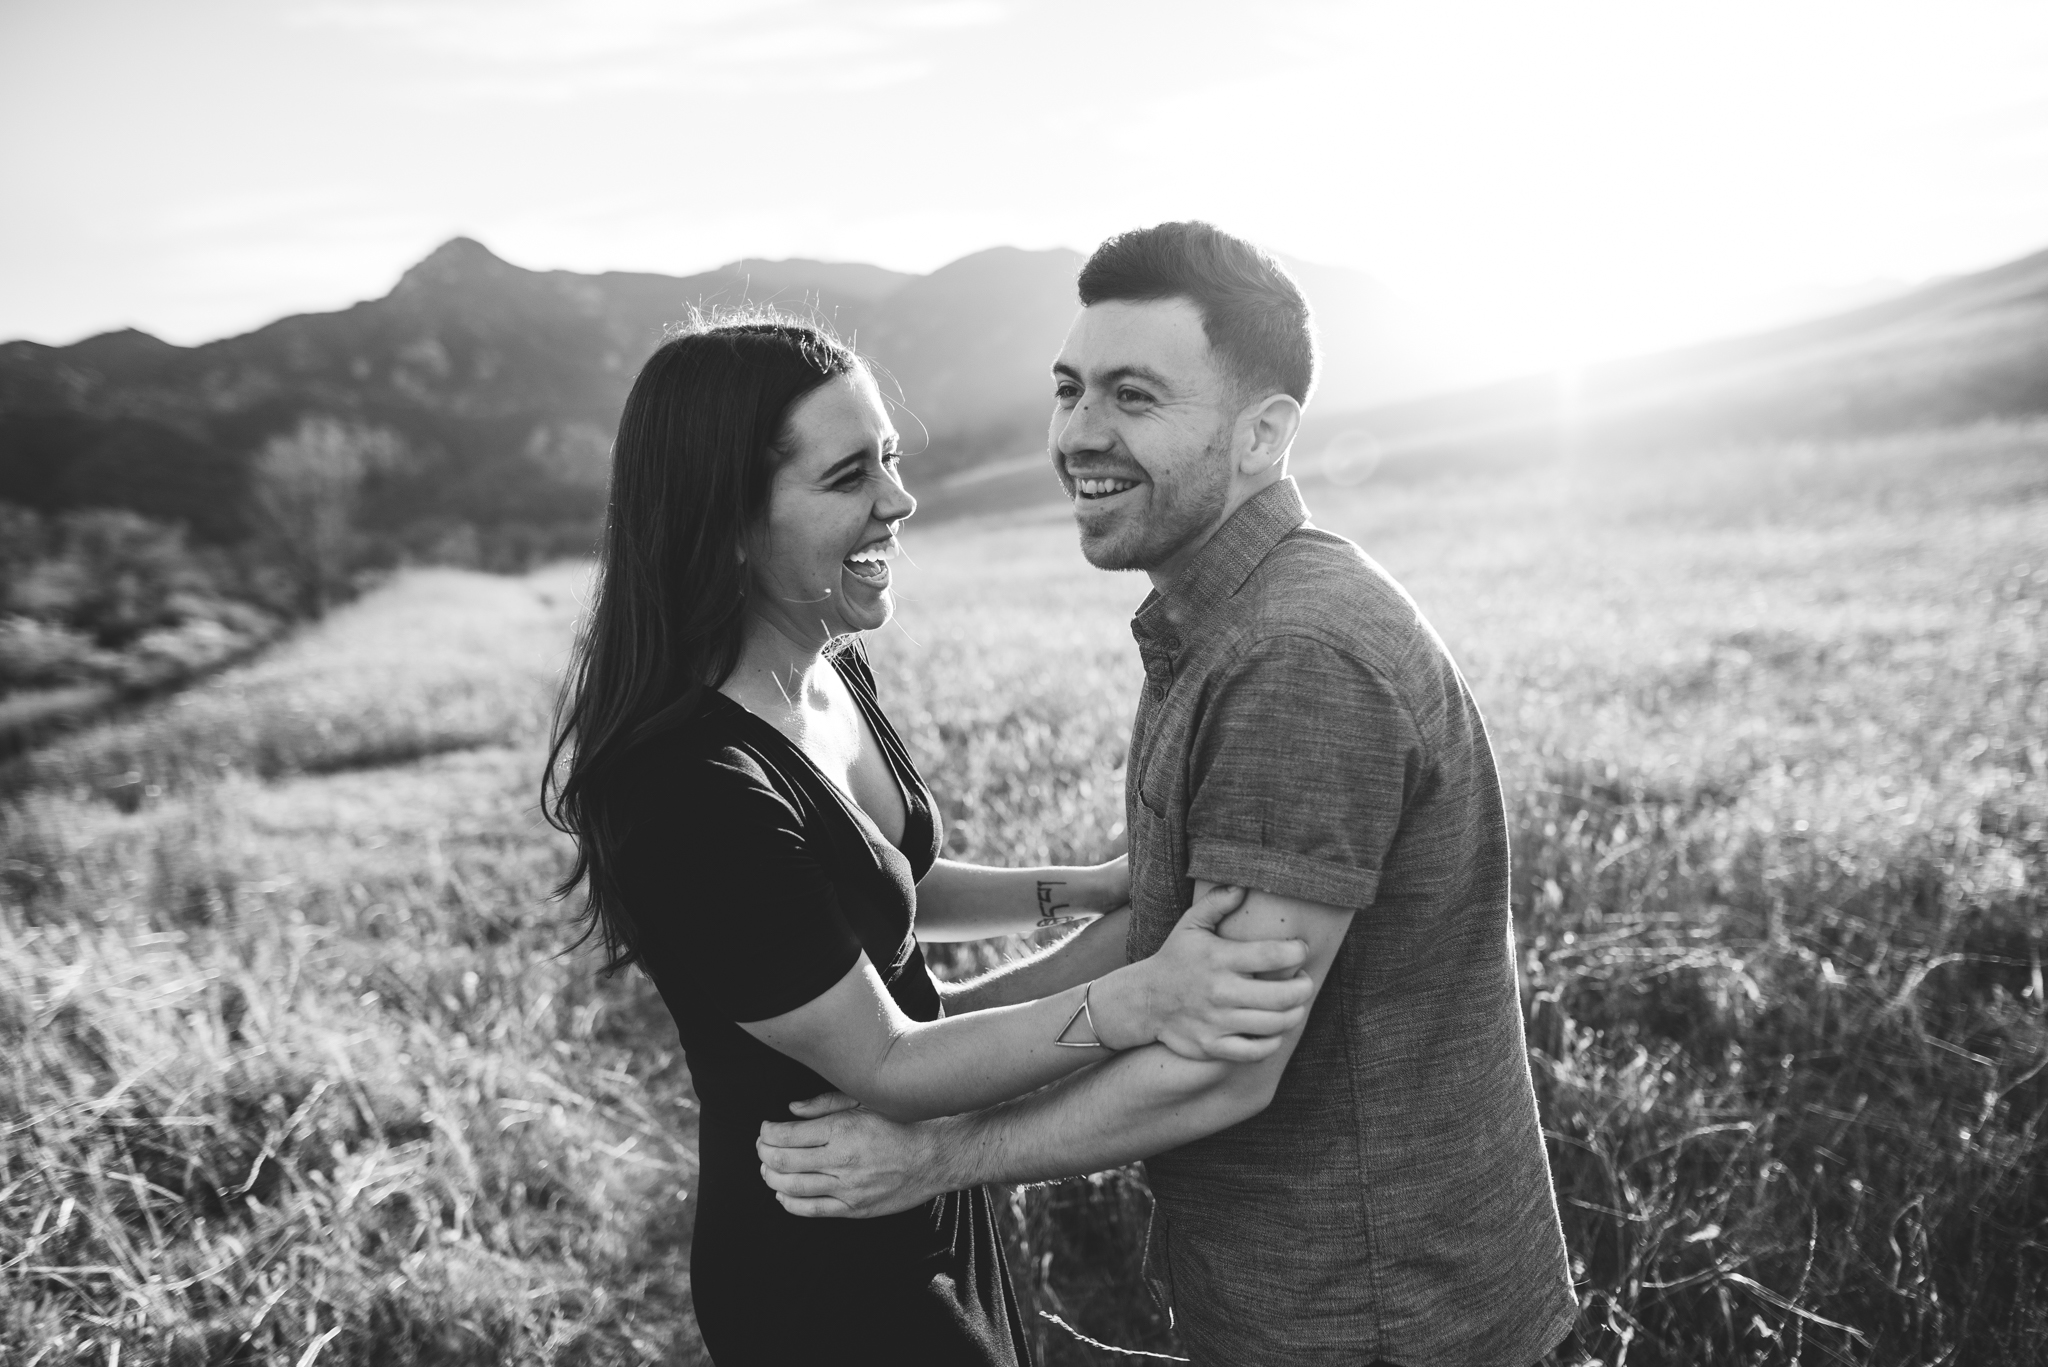 ©Isaiah-&-Taylor-Photography---Malibu-Field-Engagement,-Southern-California-Wedding-Photographer-006.jpg